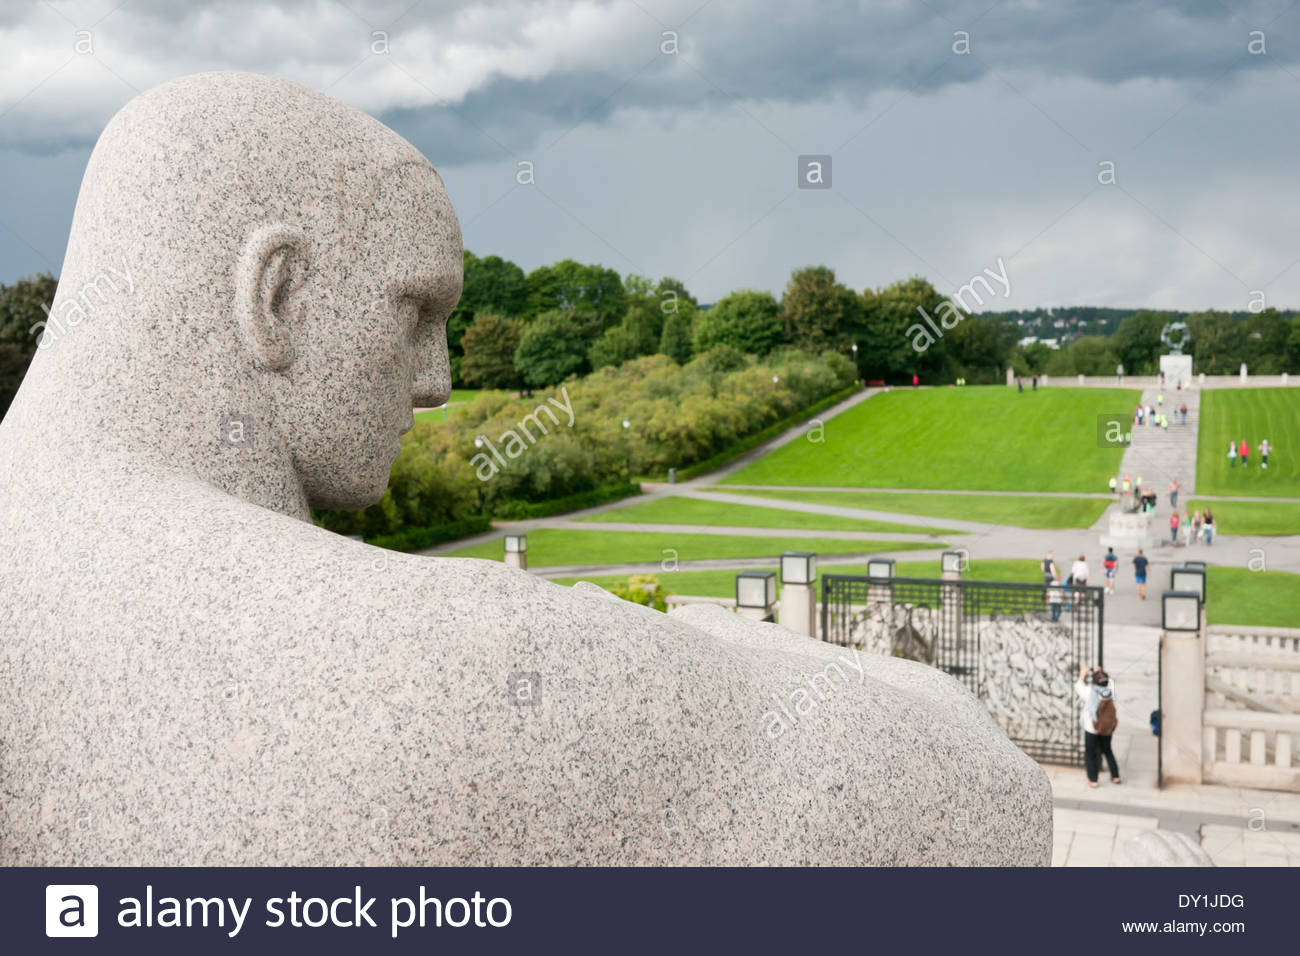 sculpture-by-gustav-vigeland-in-the-vigeland-park-oslo-norway-DY1JDG.jpg